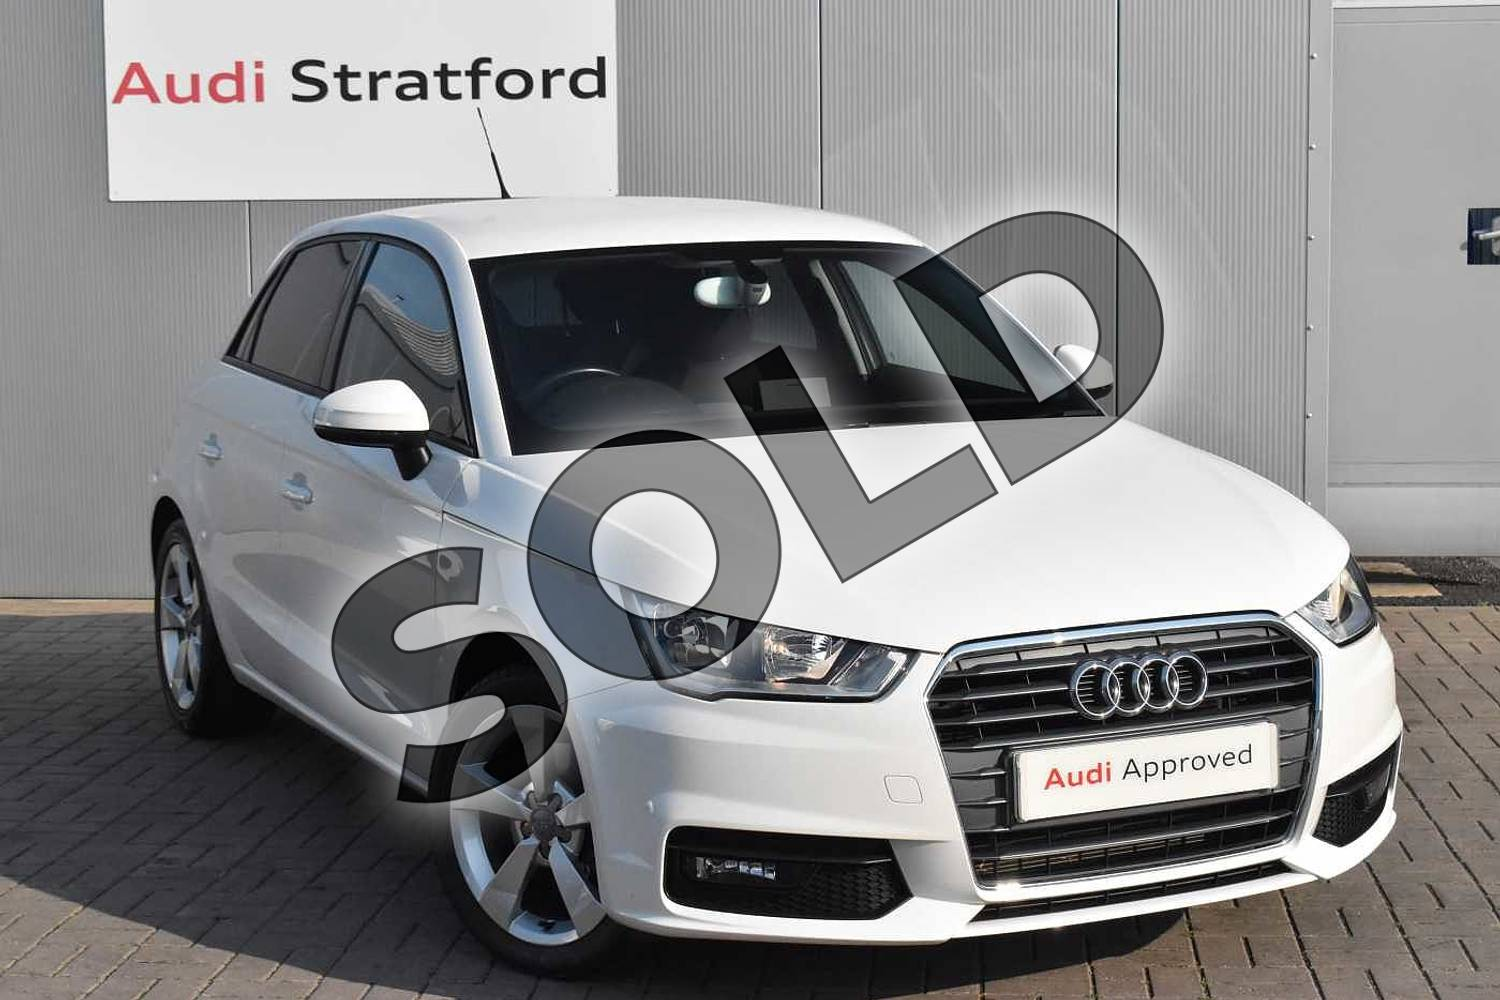 2016 Audi A1 Sportback 1.4 TFSI Sport 5dr in Shell White at Stratford Audi